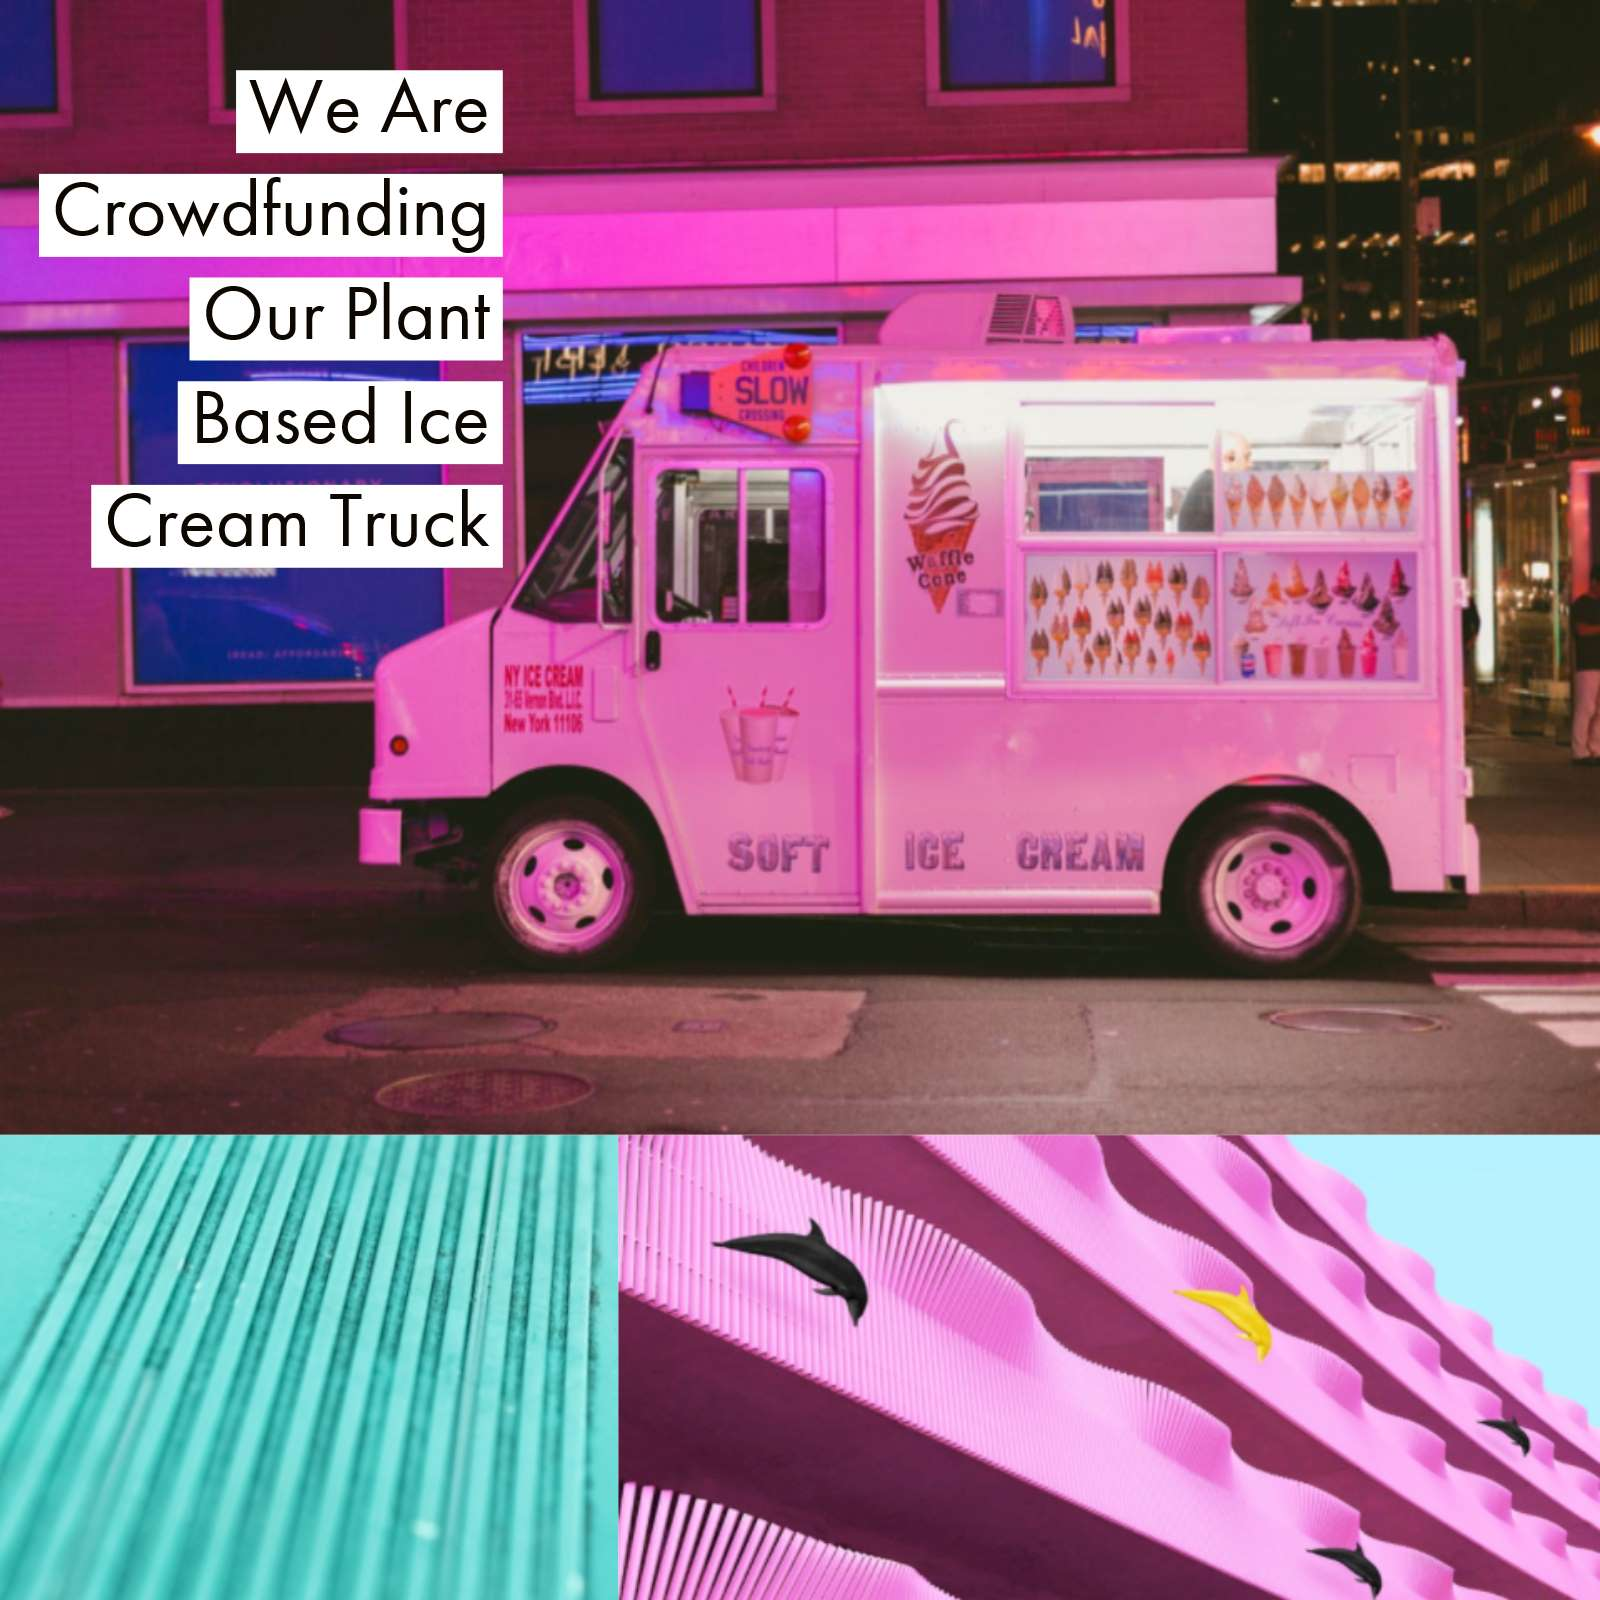 We are crowdfunding our plant based ice cream truck